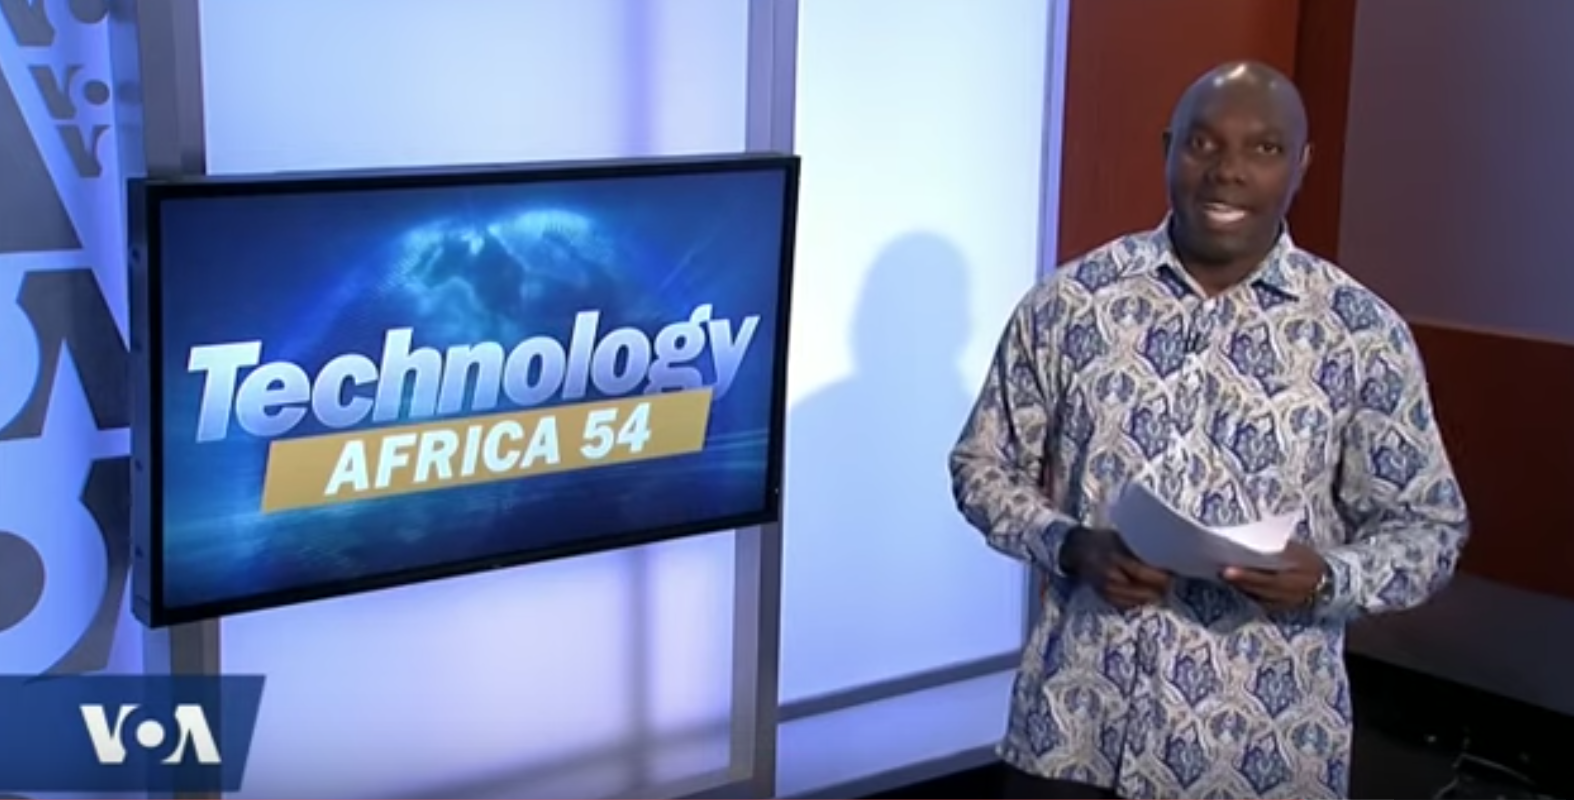 Paul Ndiho - Africa 54 Technology